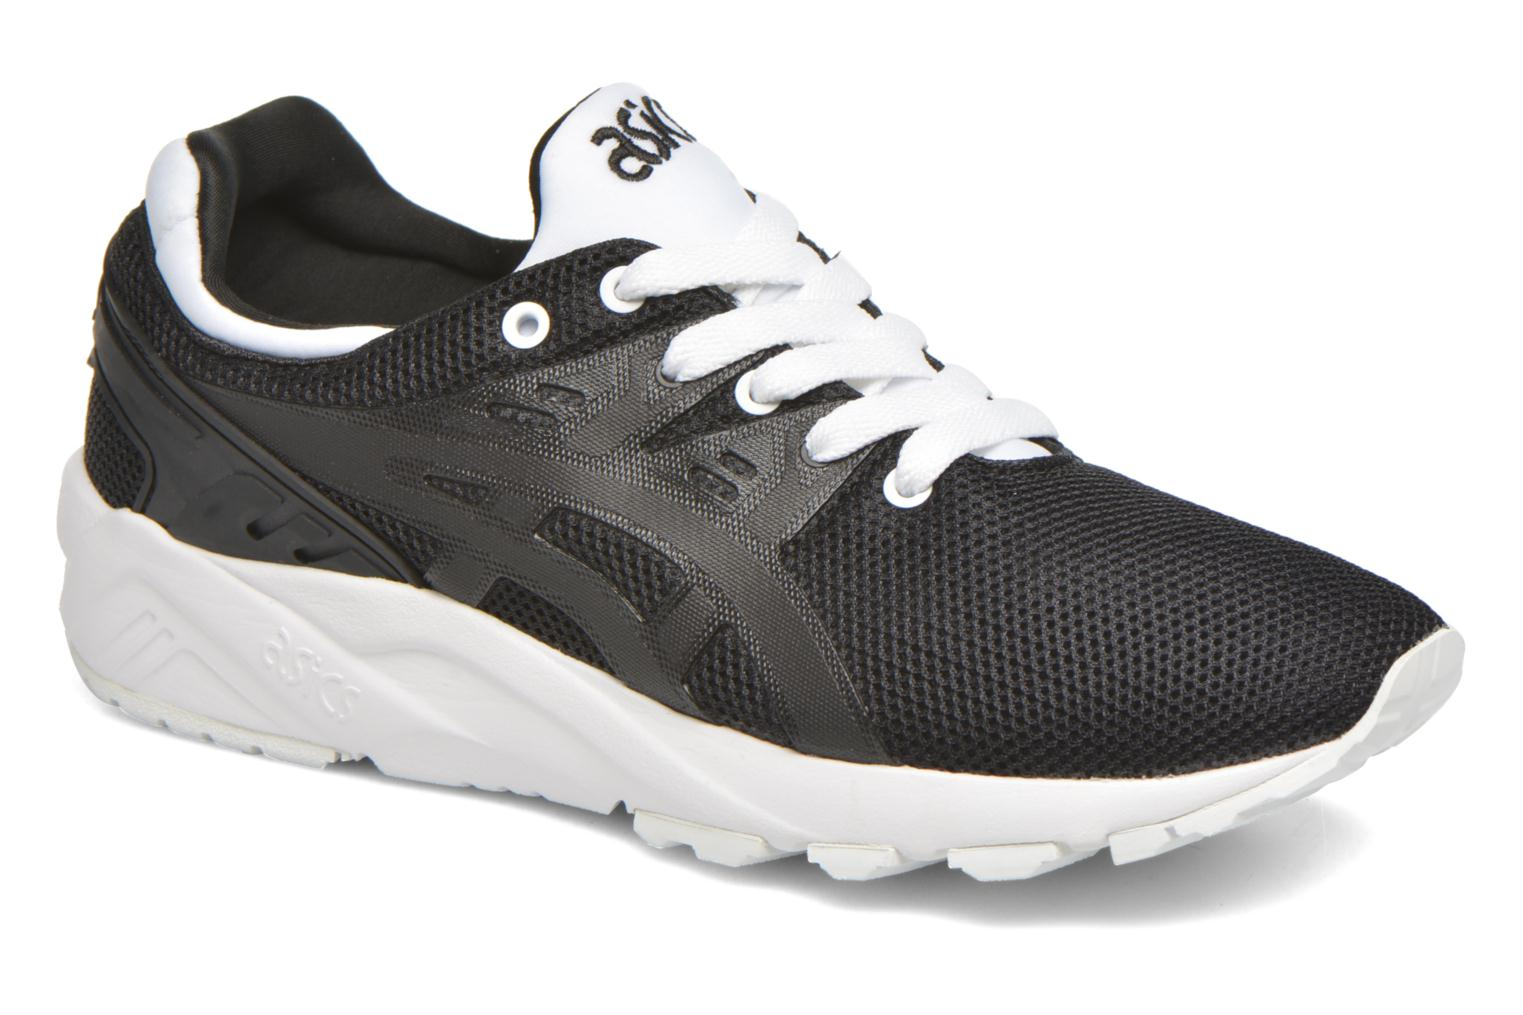 Gel-Kayano Trainer Evo W Black/Black1